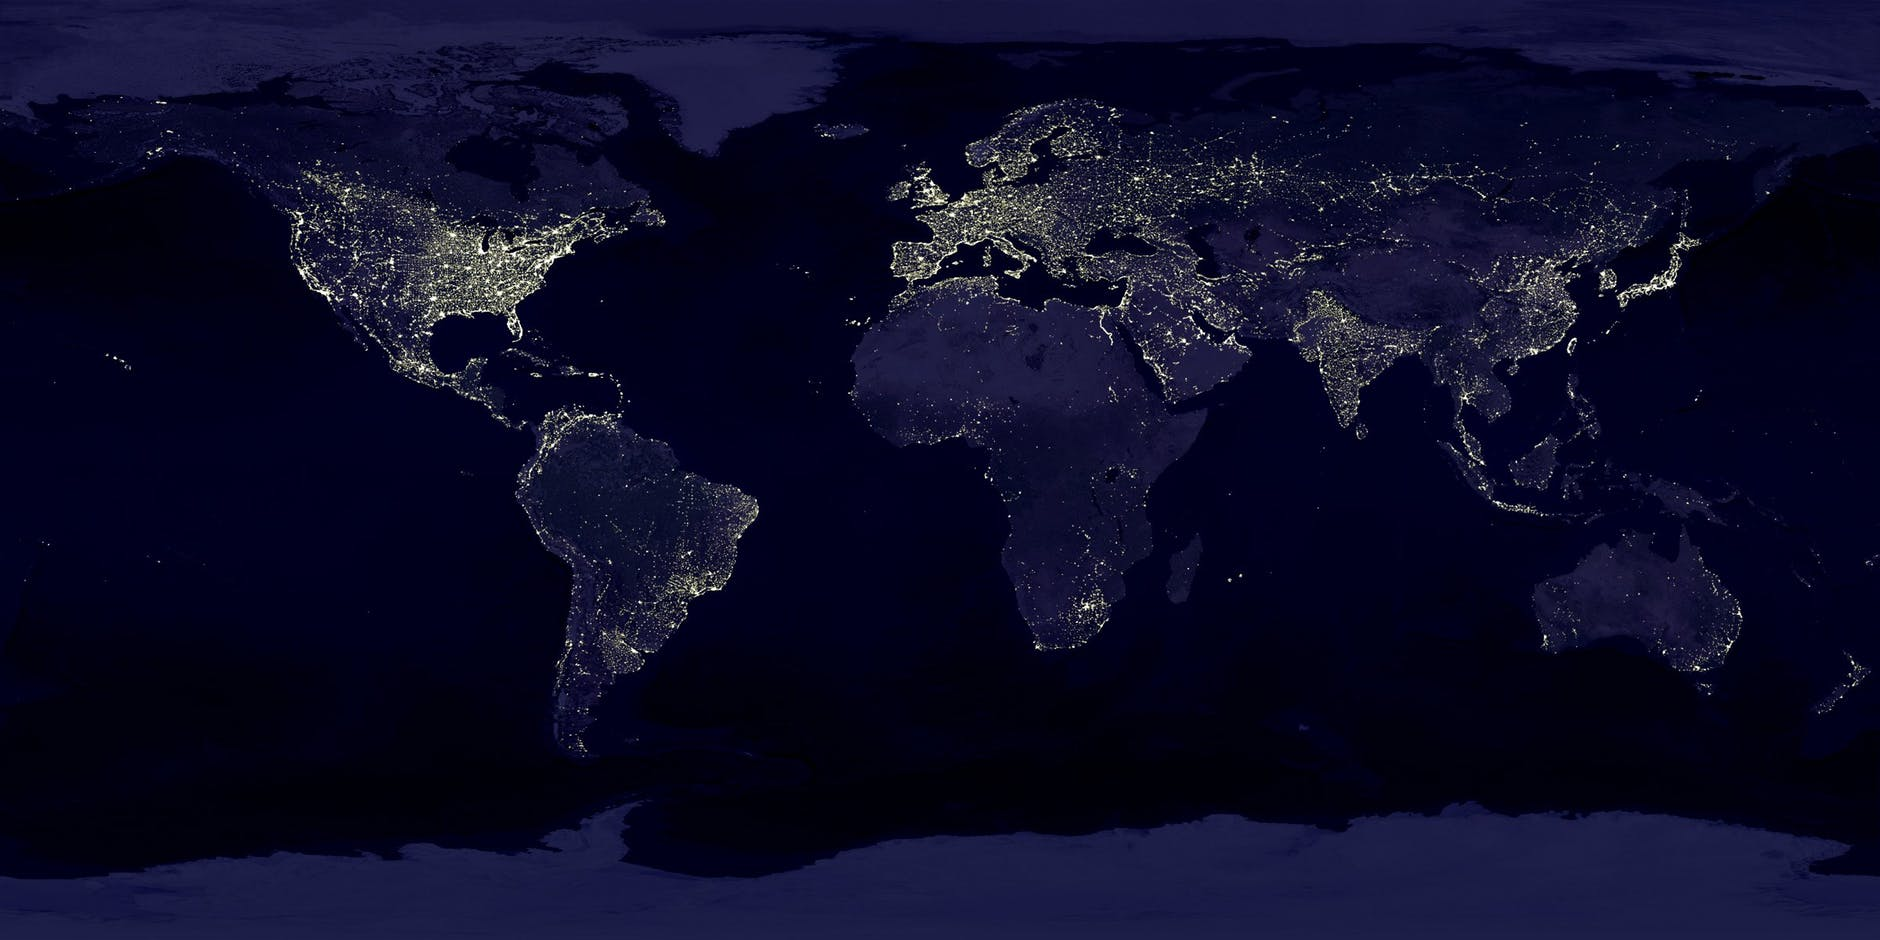 places to go for new year's eve - world light map - light - the world - new york - la - across the world in one night